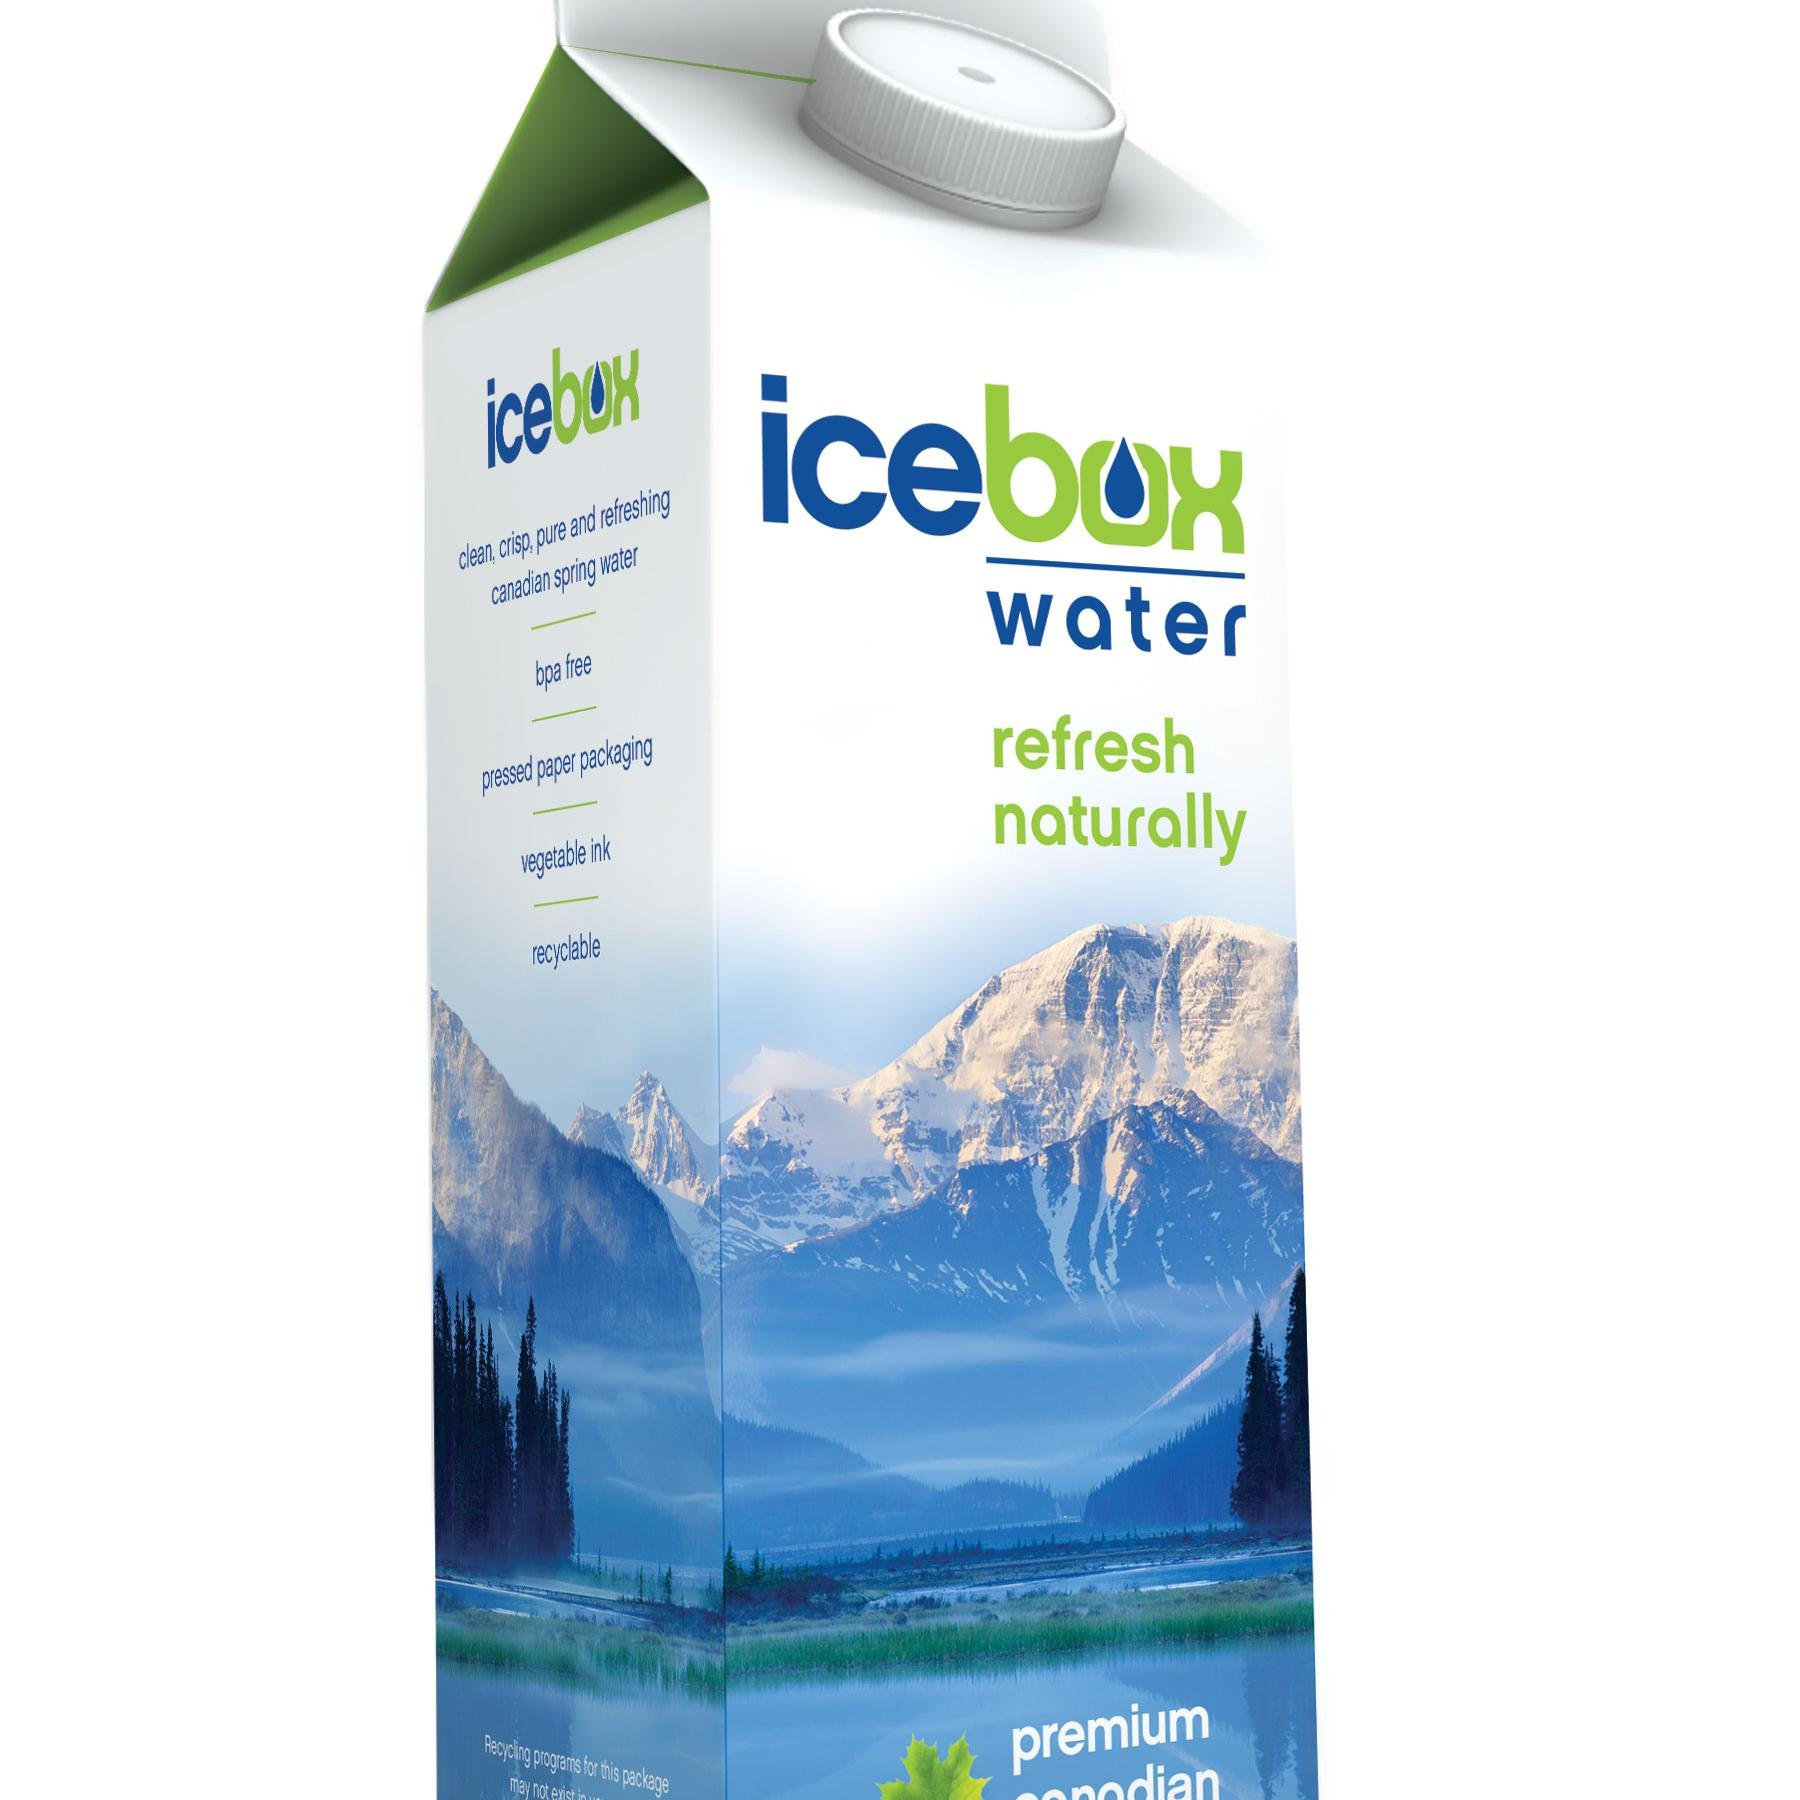 Icebox Water Announces its Support of Charity Water